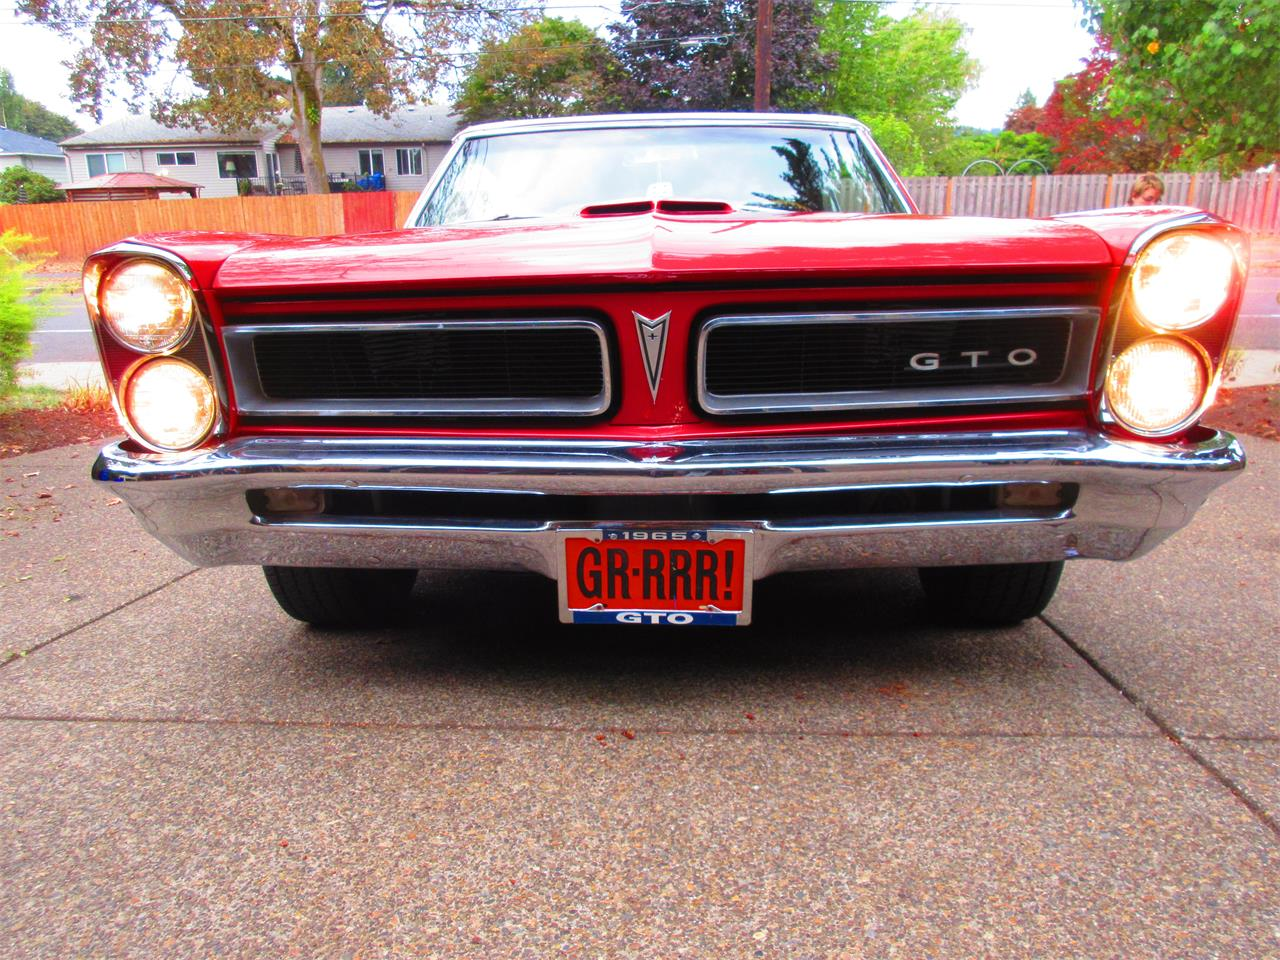 Large Picture of '65 Pontiac GTO located in Oregon - $69,990.00 Offered by a Private Seller - OQVM